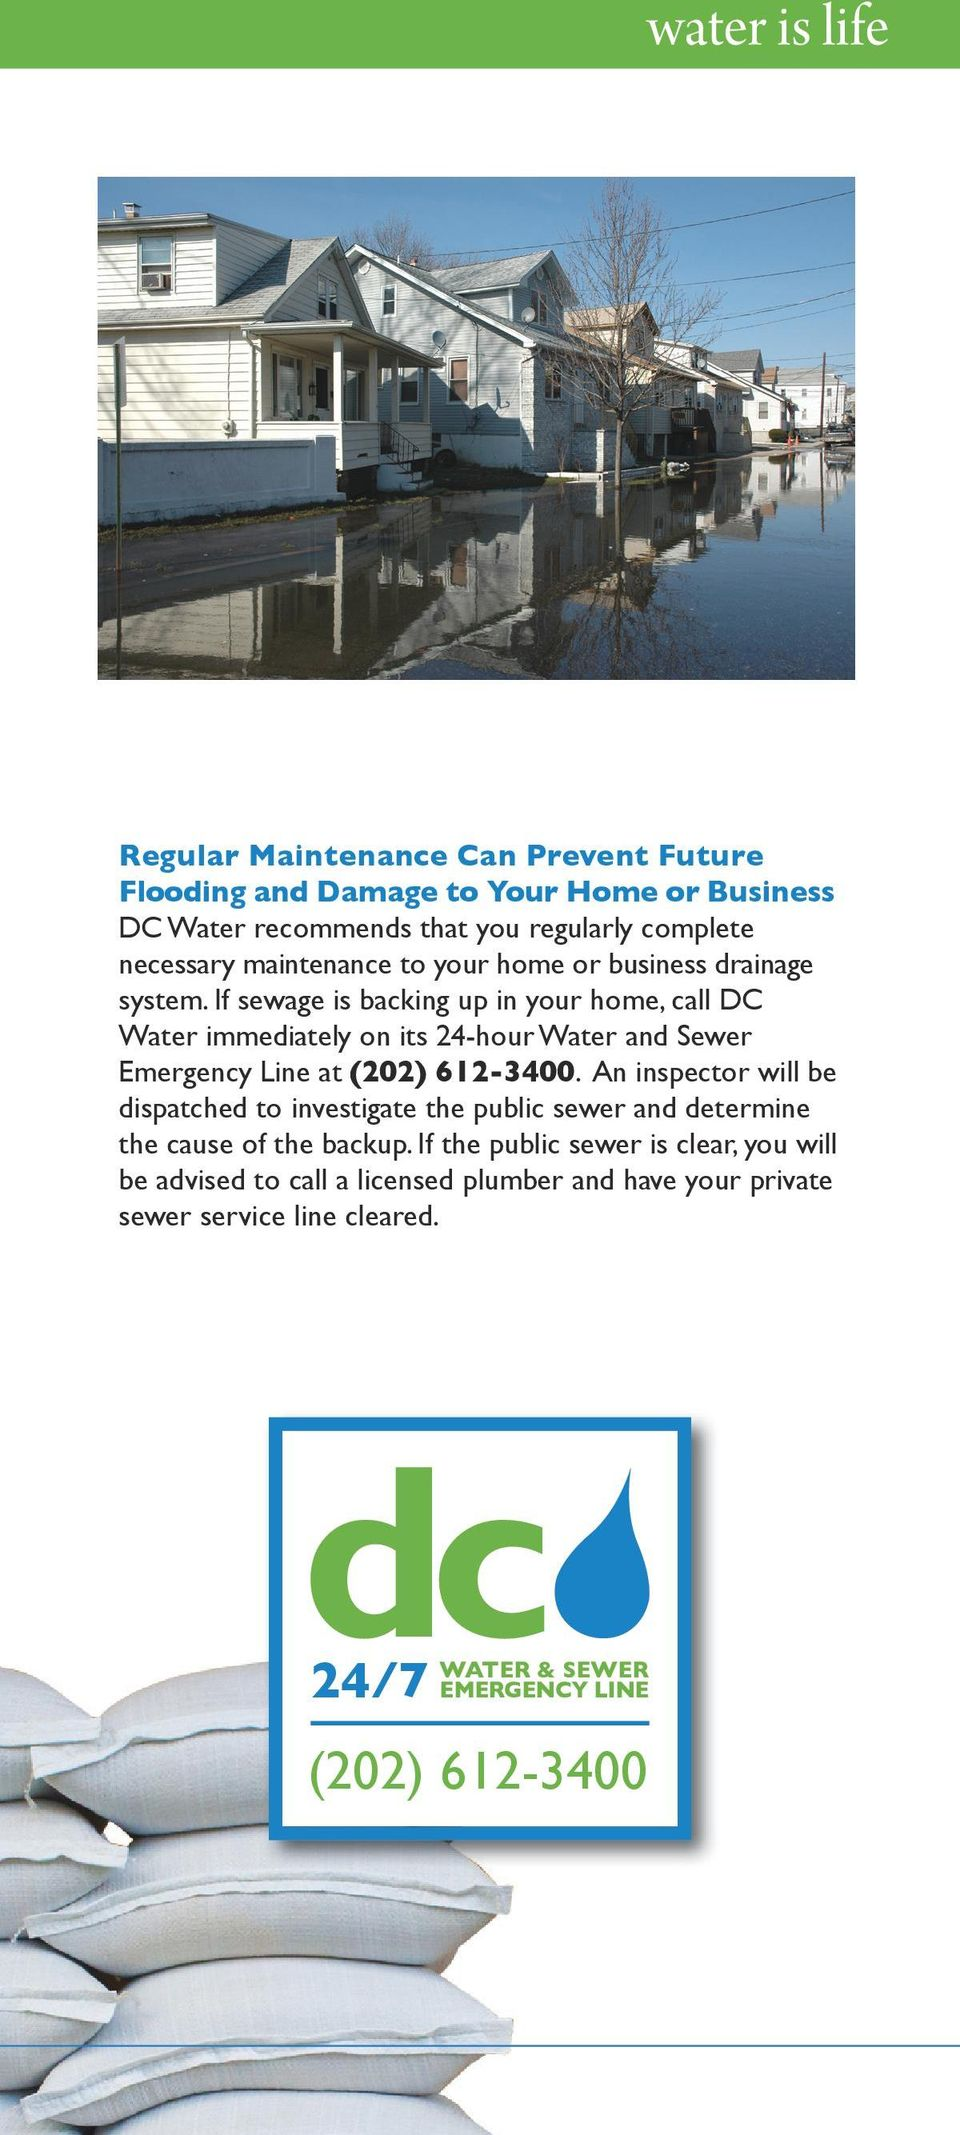 If sewage is backing up in your home, call DC Water immediately on its 24-hour Water and Sewer Emergency Line at (202) 612-3400.